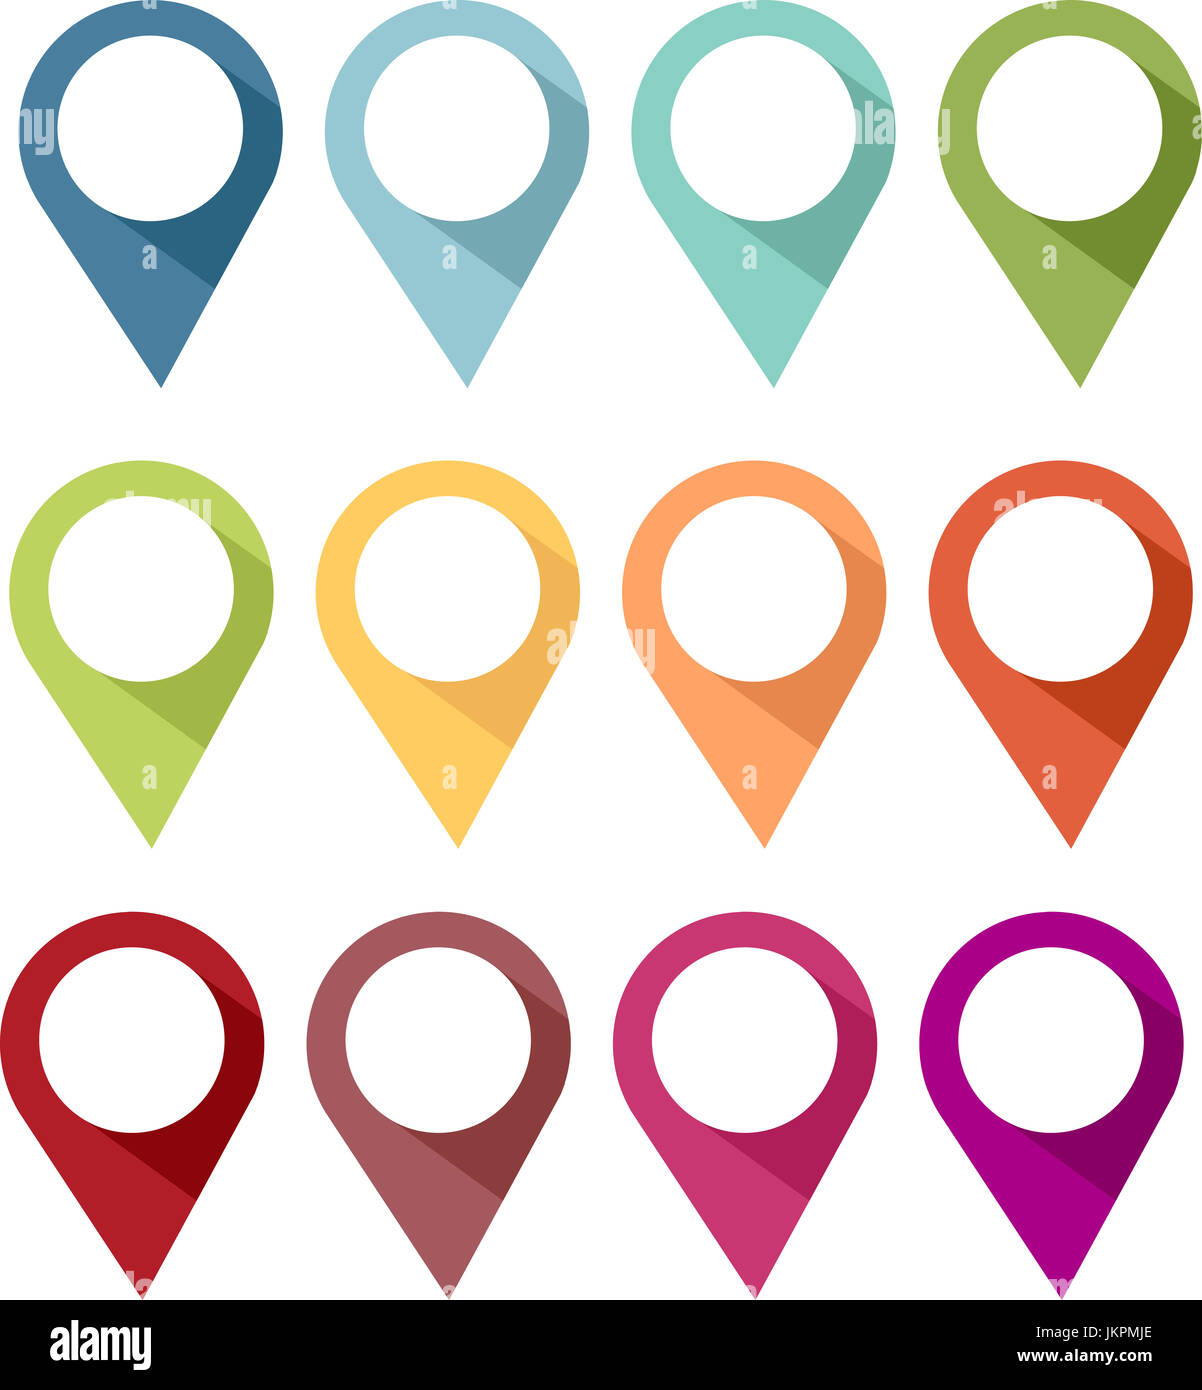 Colorful pins icon for locating, reporting, or indicating a location, location, or action - Stock Image